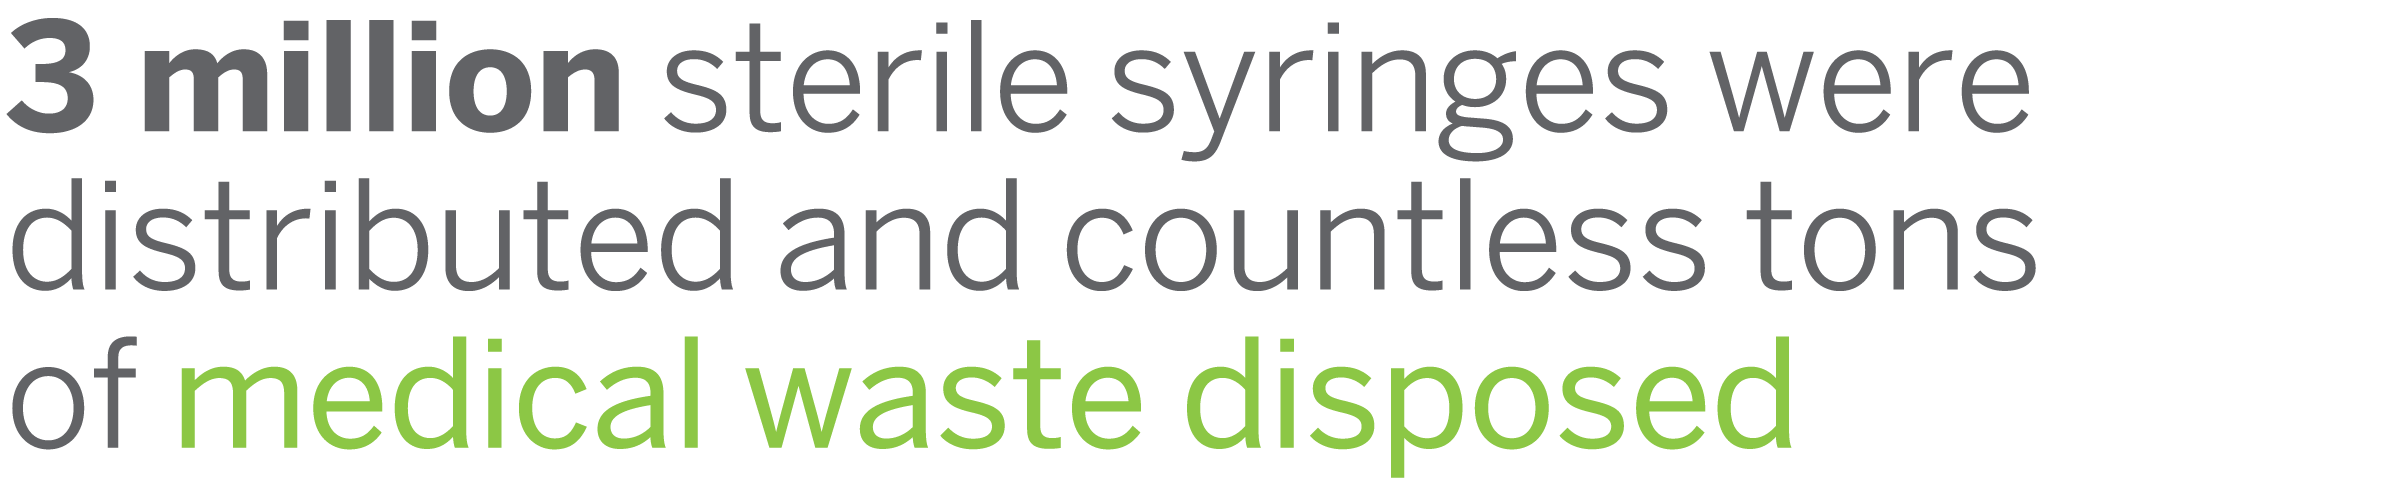 3 million sterile syringes were distributed and countless tons of medical waste disposted